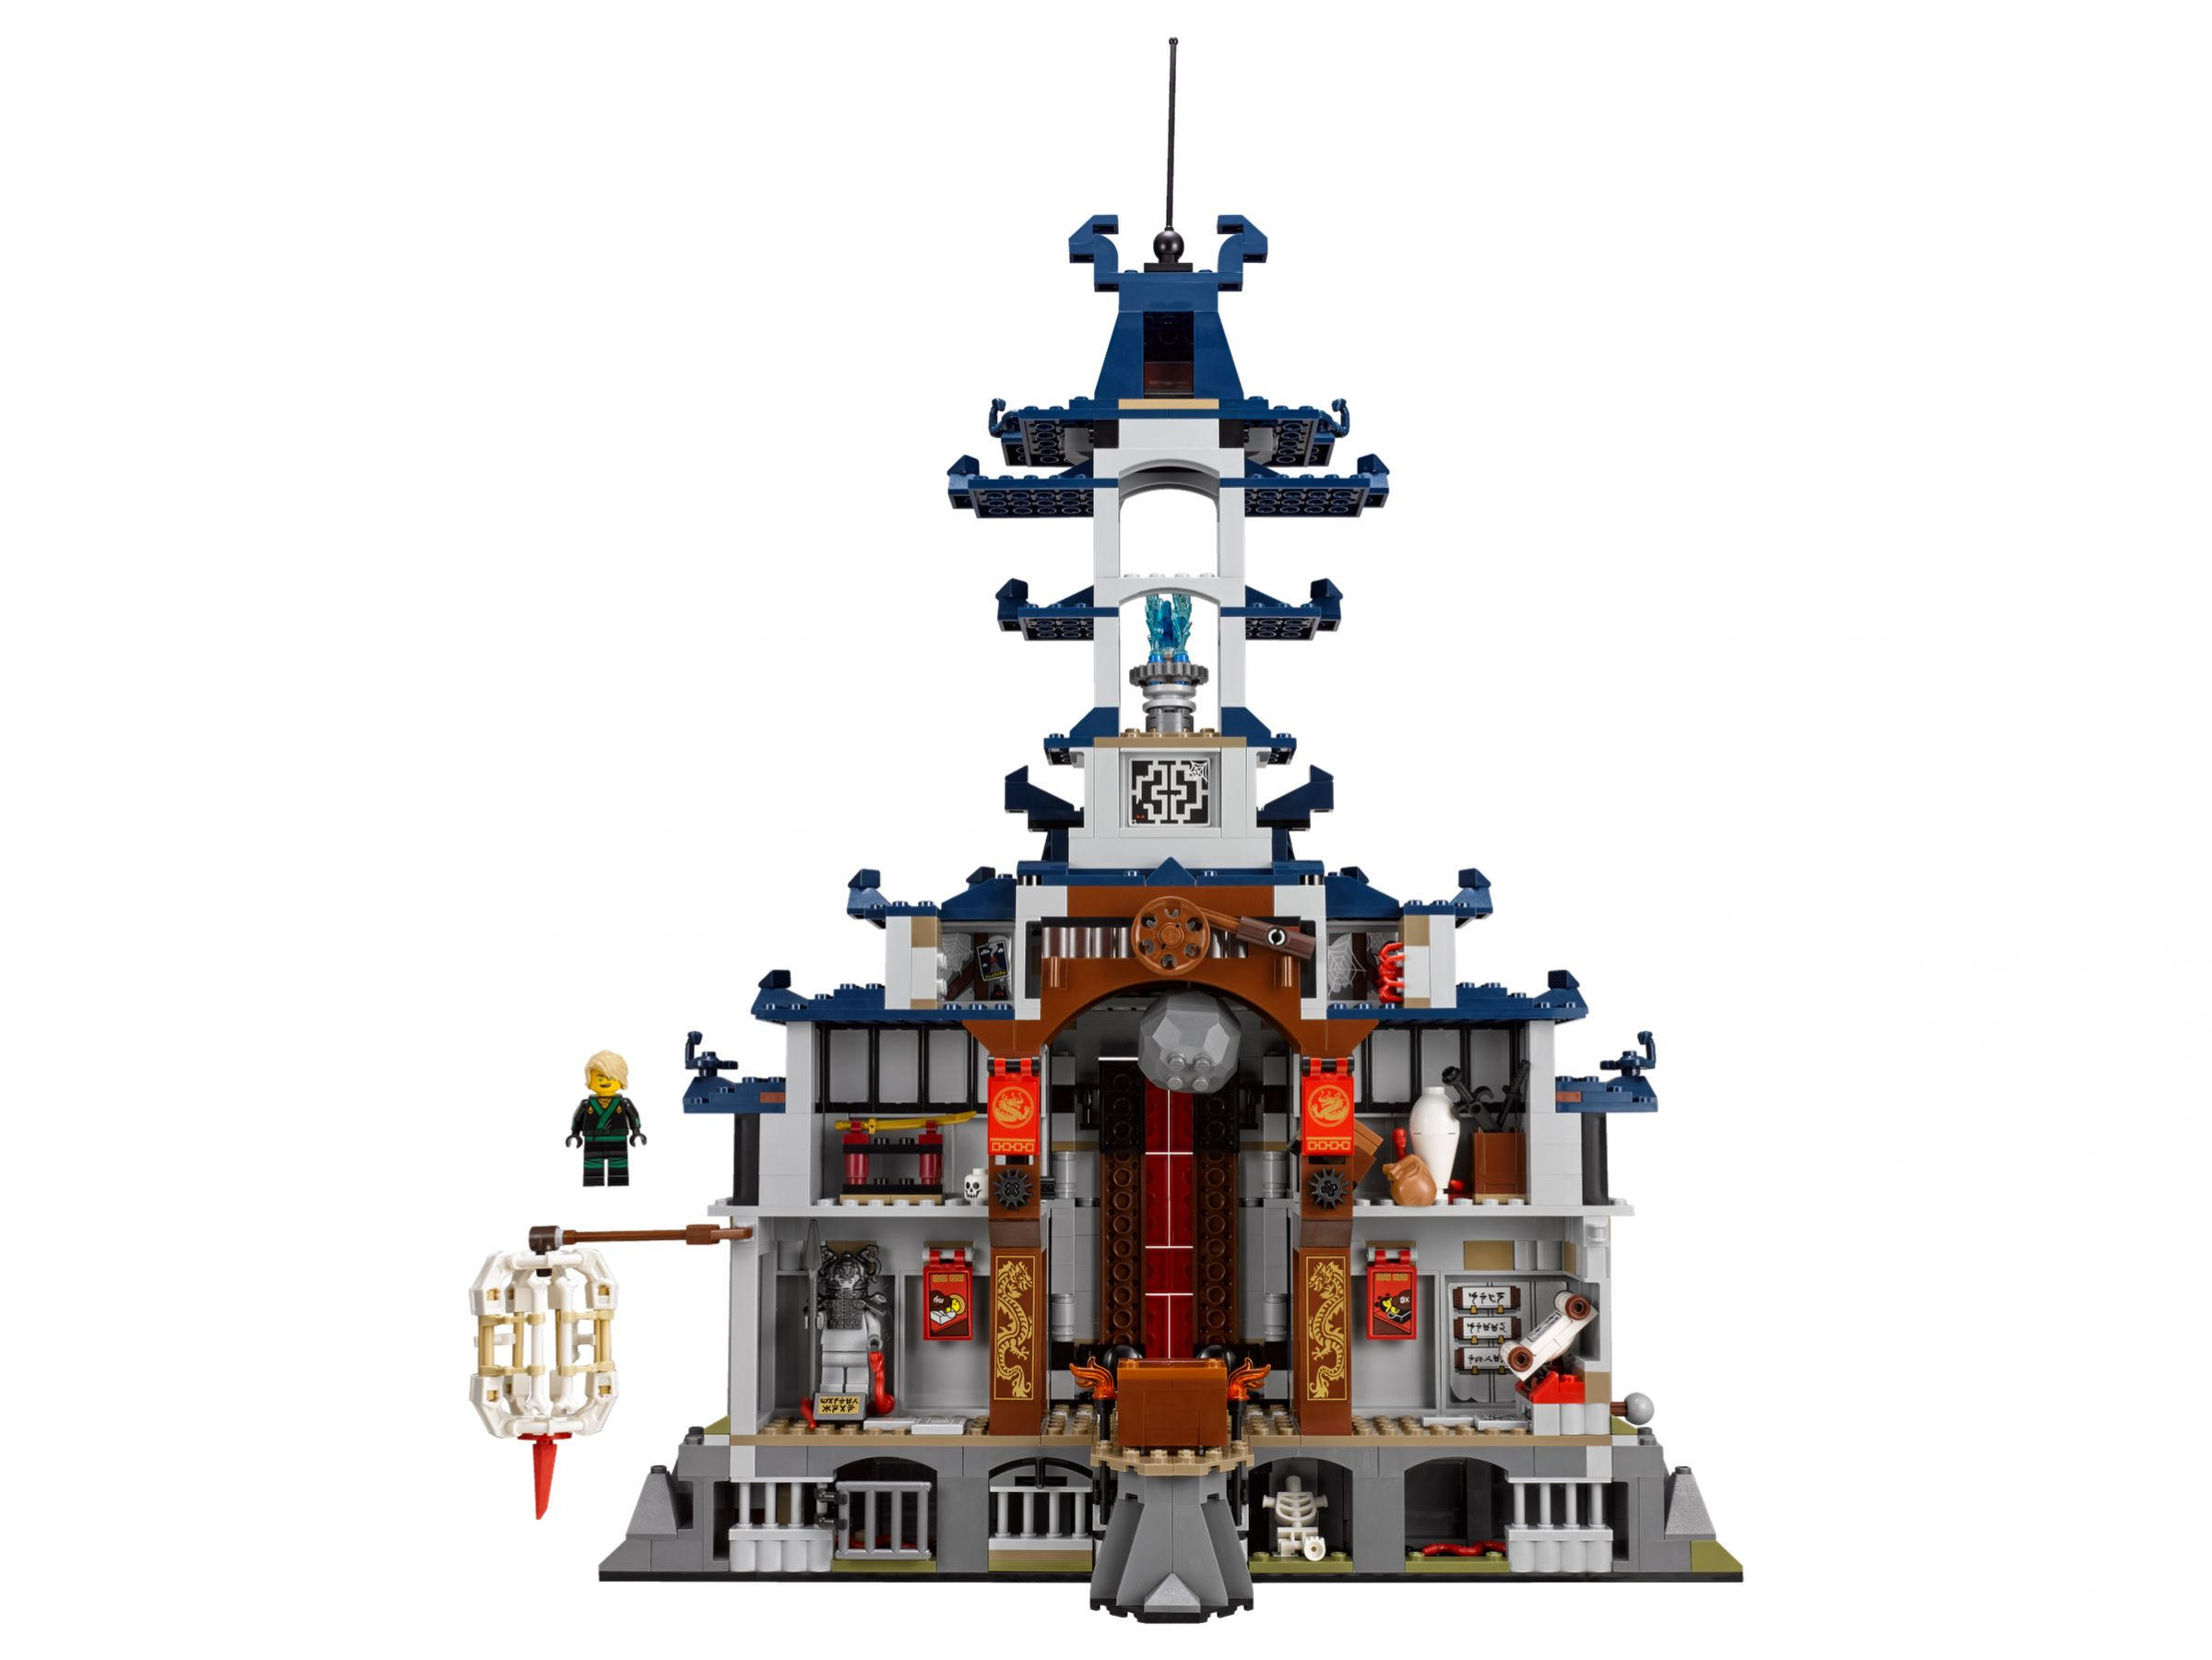 LEGO The LEGO Ninjago Movie 70617 Ultimativ ultimatives Tempel-Versteck LEGO_70617_alt5.jpg